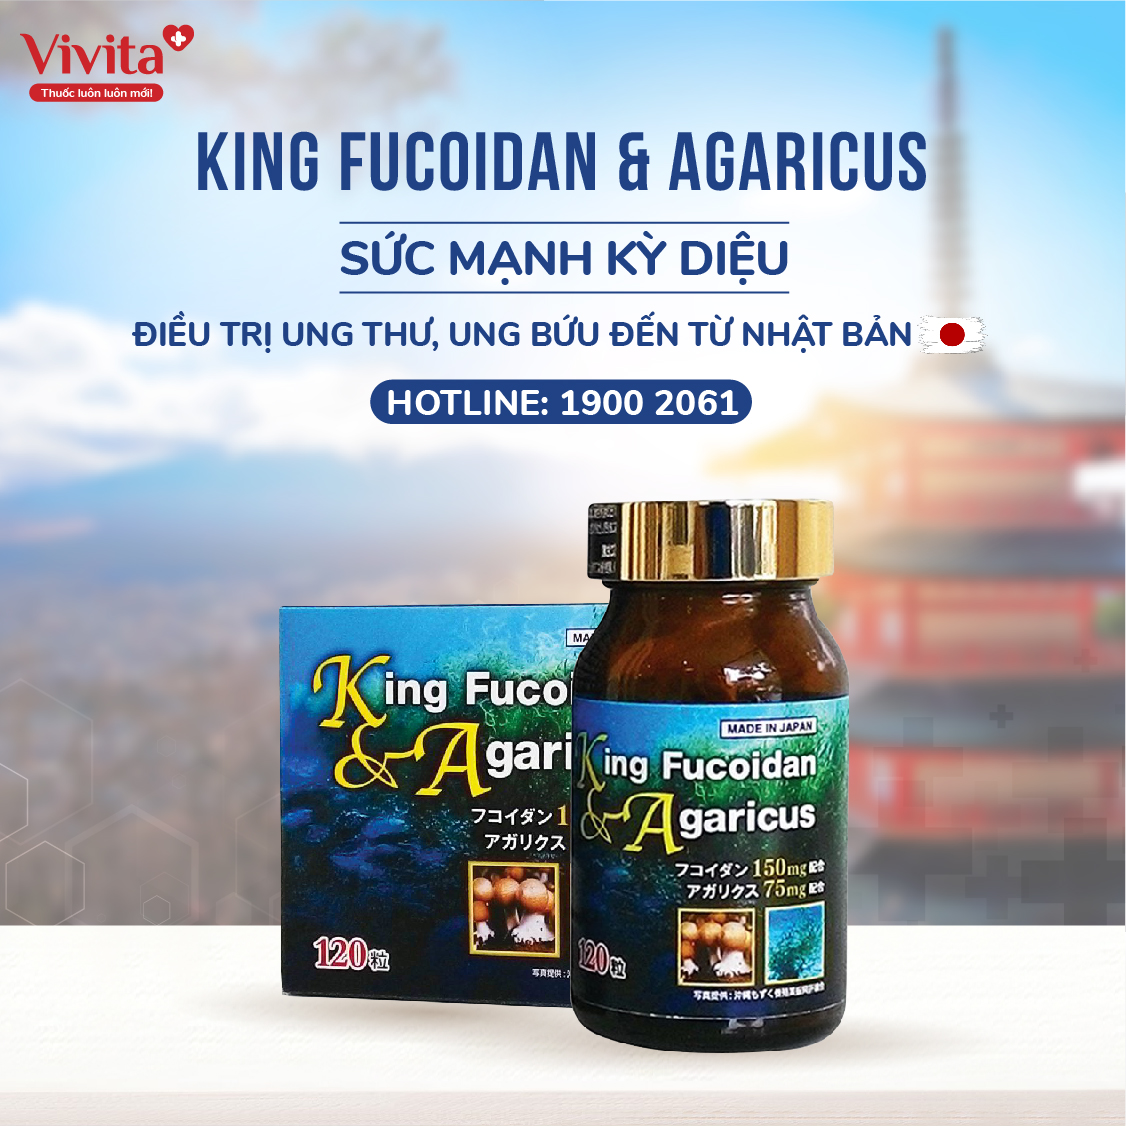 king fucodian